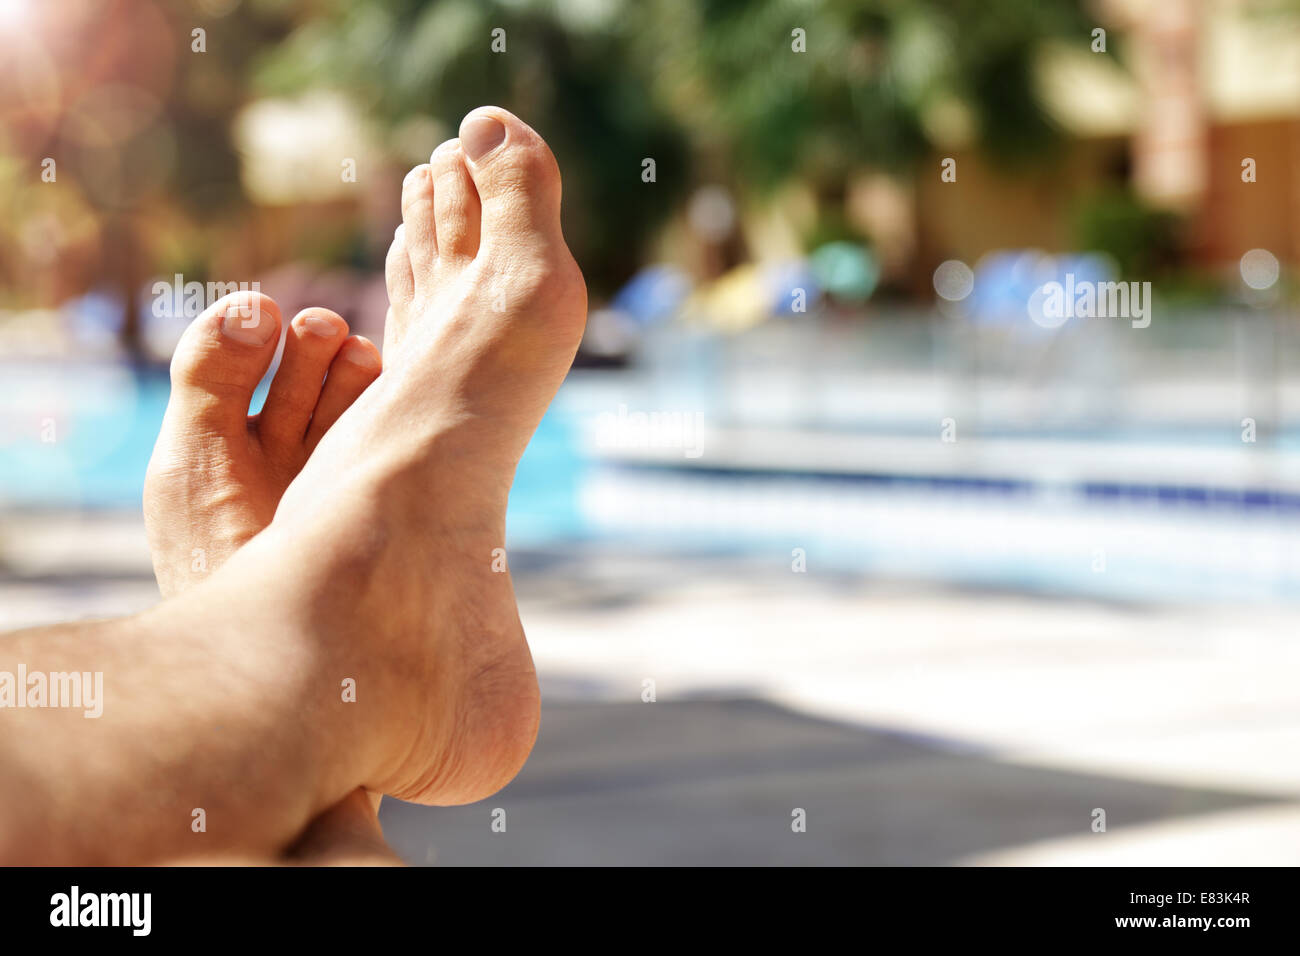 Sonnenbaden am Swimmingpool Stockbild